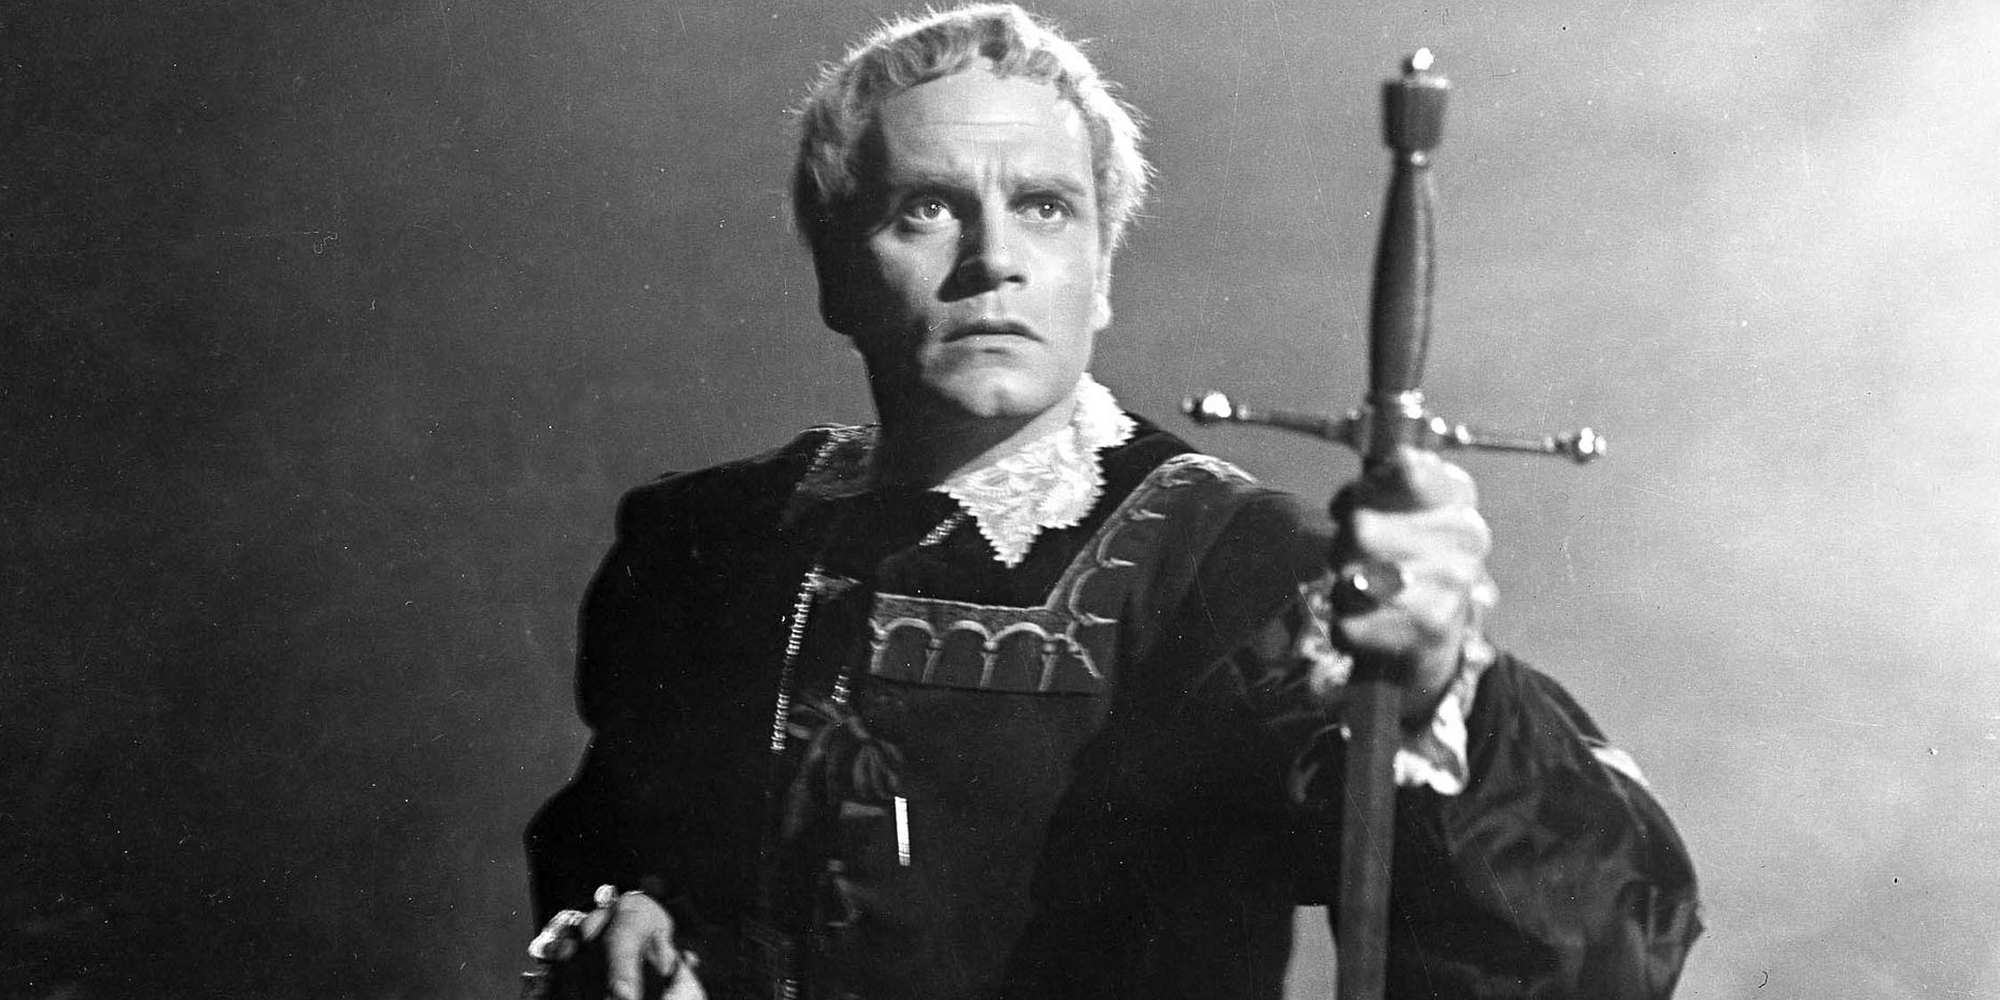 1720_Laurence-Olivier-as-Hamle-011.jpg